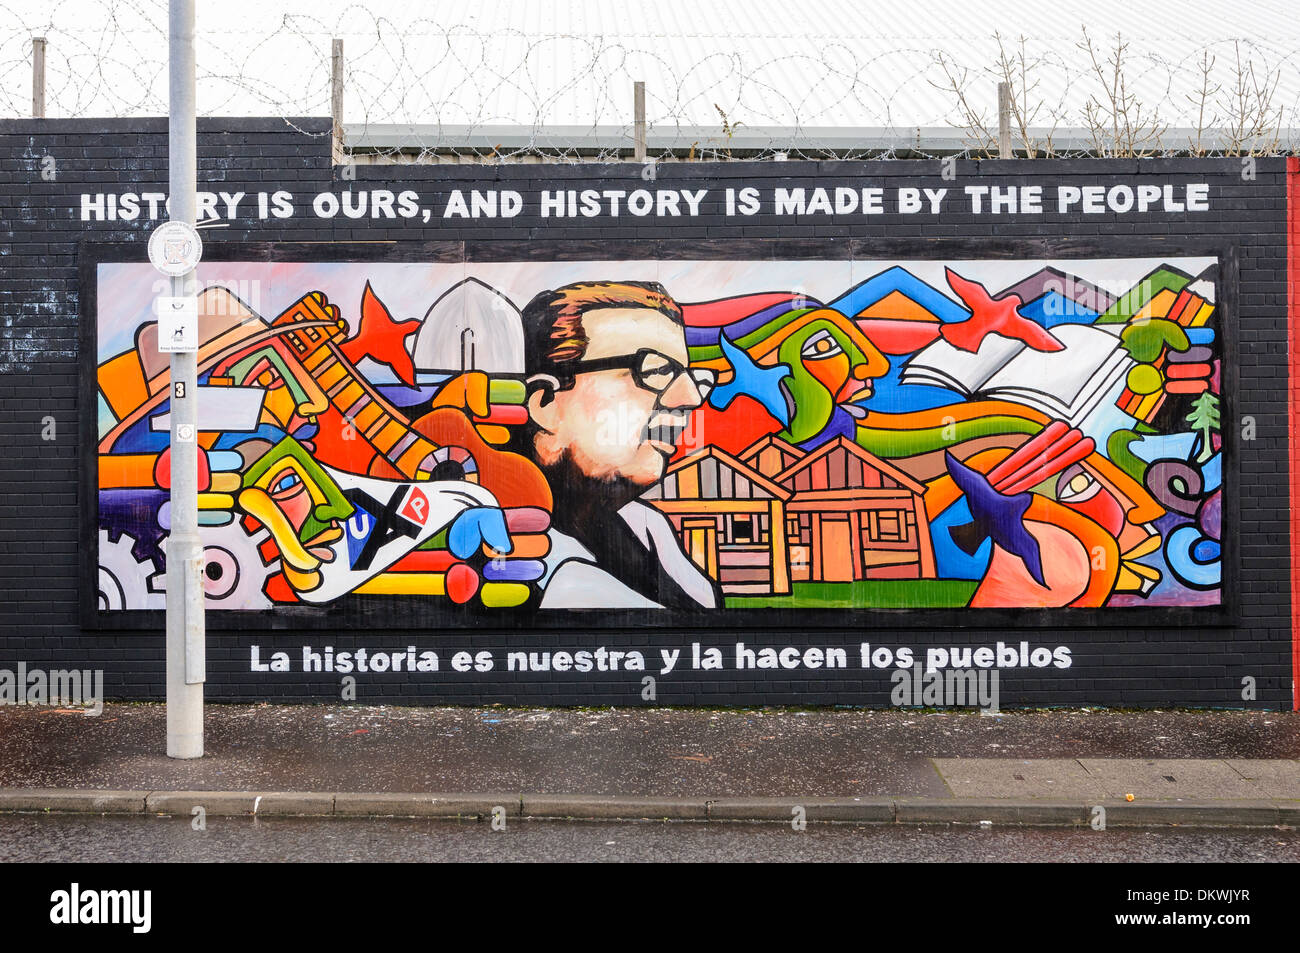 Mural at the International Peace Wall, Belfast showing the Ultimas palabras (Last words) of Salvador Allende - Stock Image